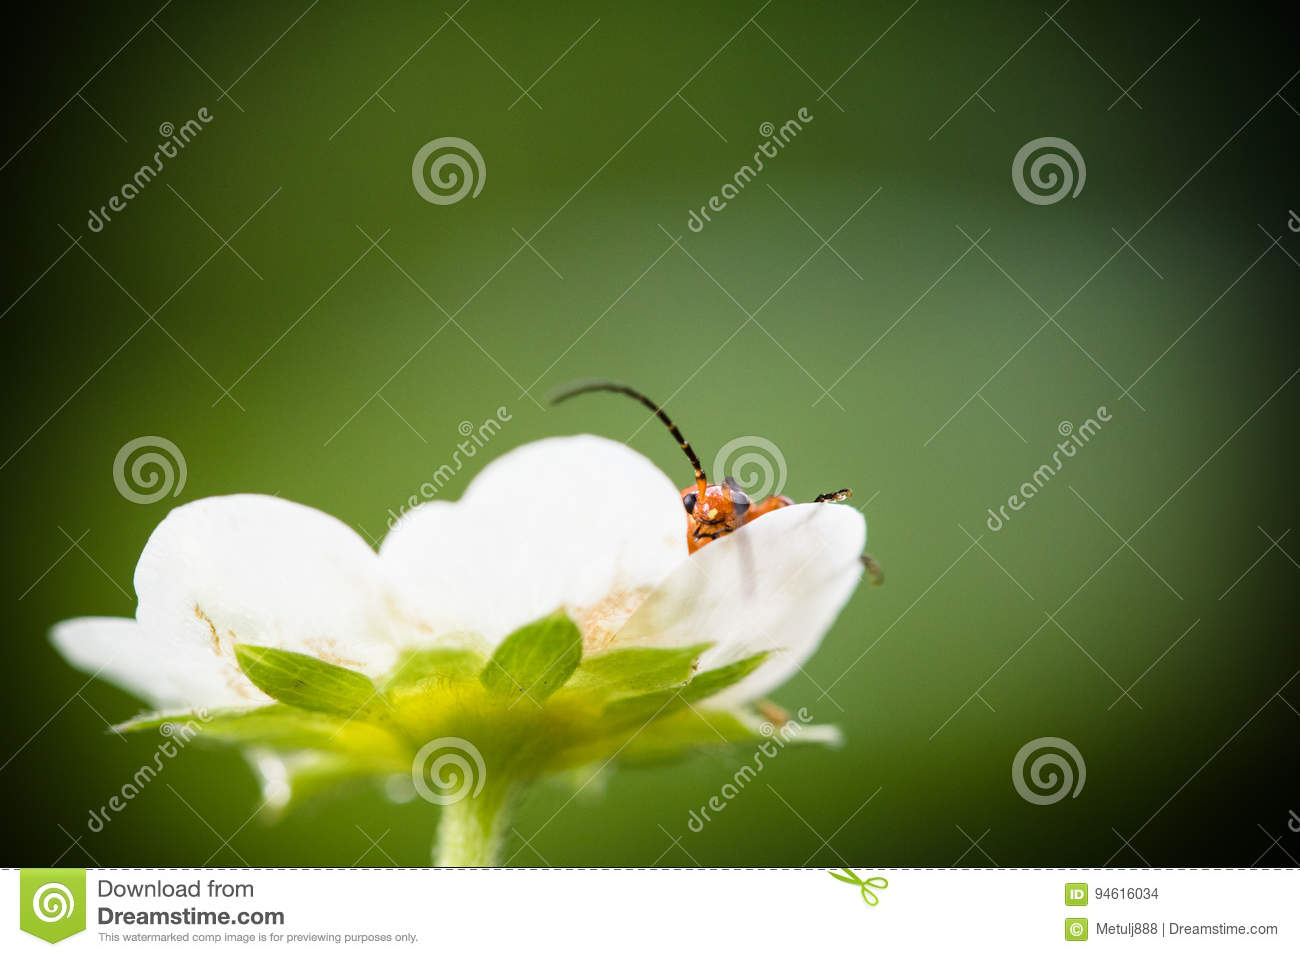 Cute red orange insect bug lying in strawberry flower looking at camera and moving his huge antennae in blurred green background